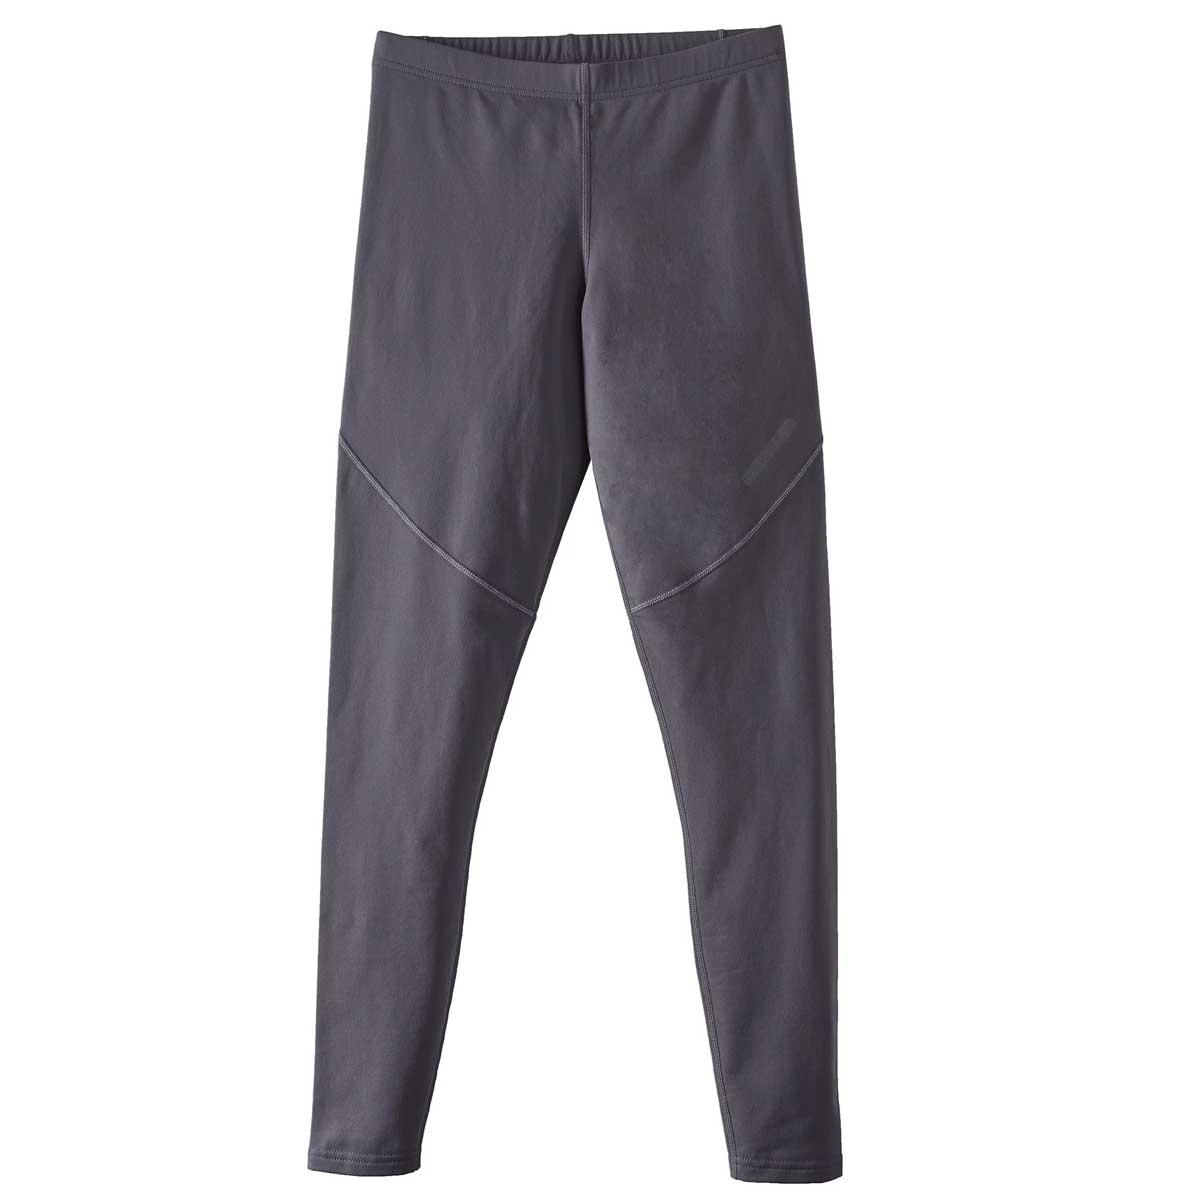 Hot Chillys Men's MEXT Tight in Noche and Grey